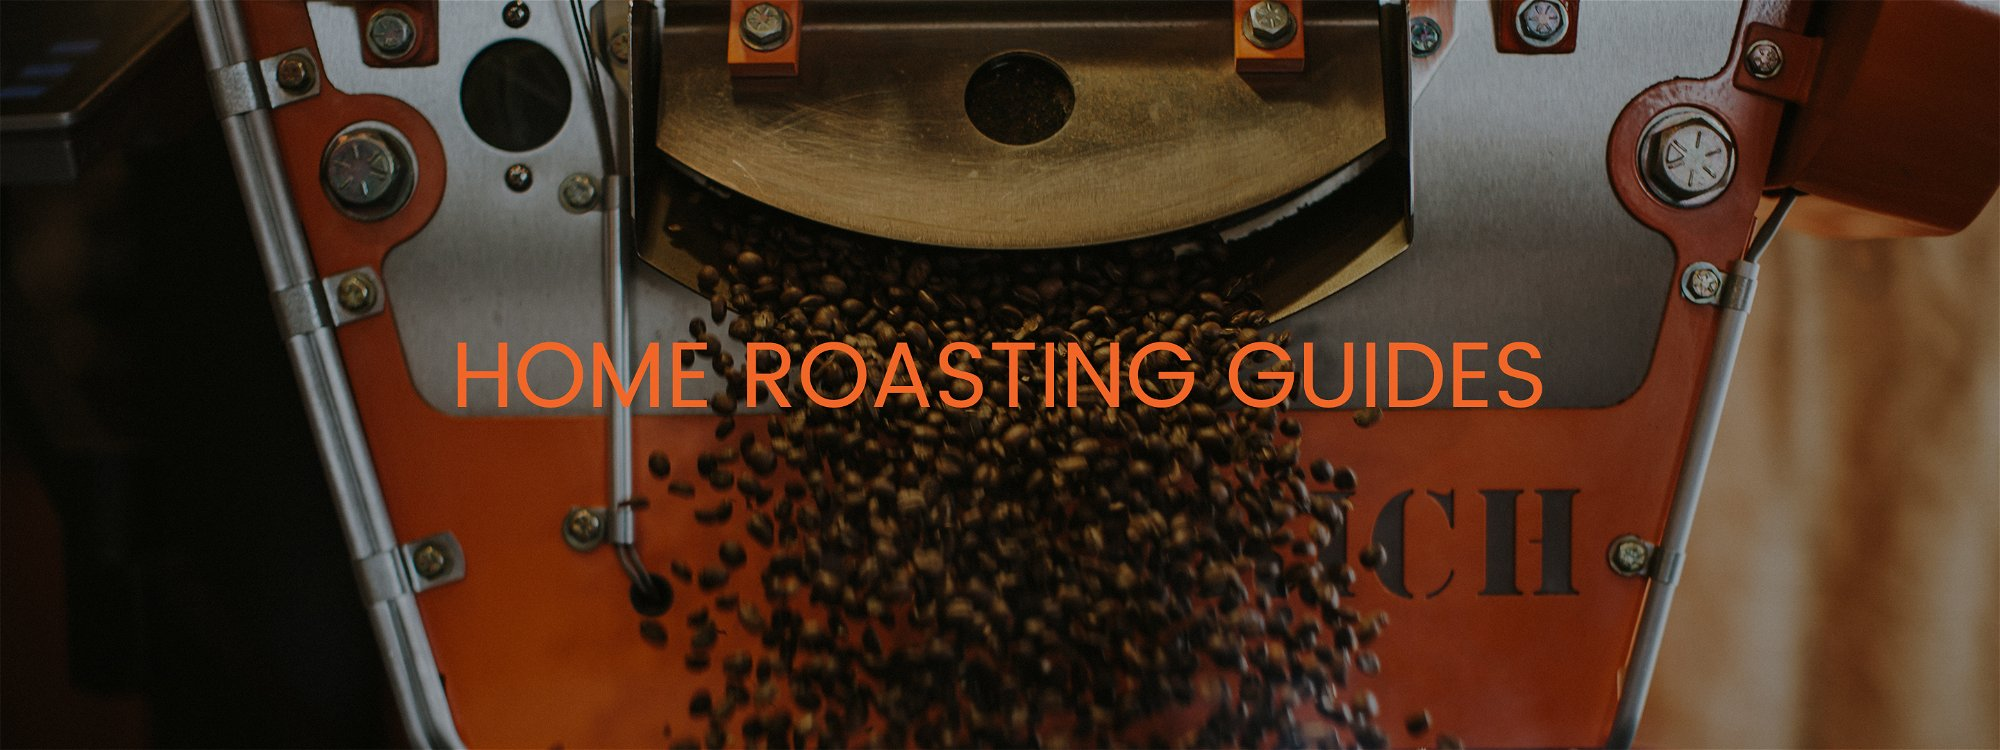 HOME ROASTING GUIDES - COFFEE EXITING ROASTER